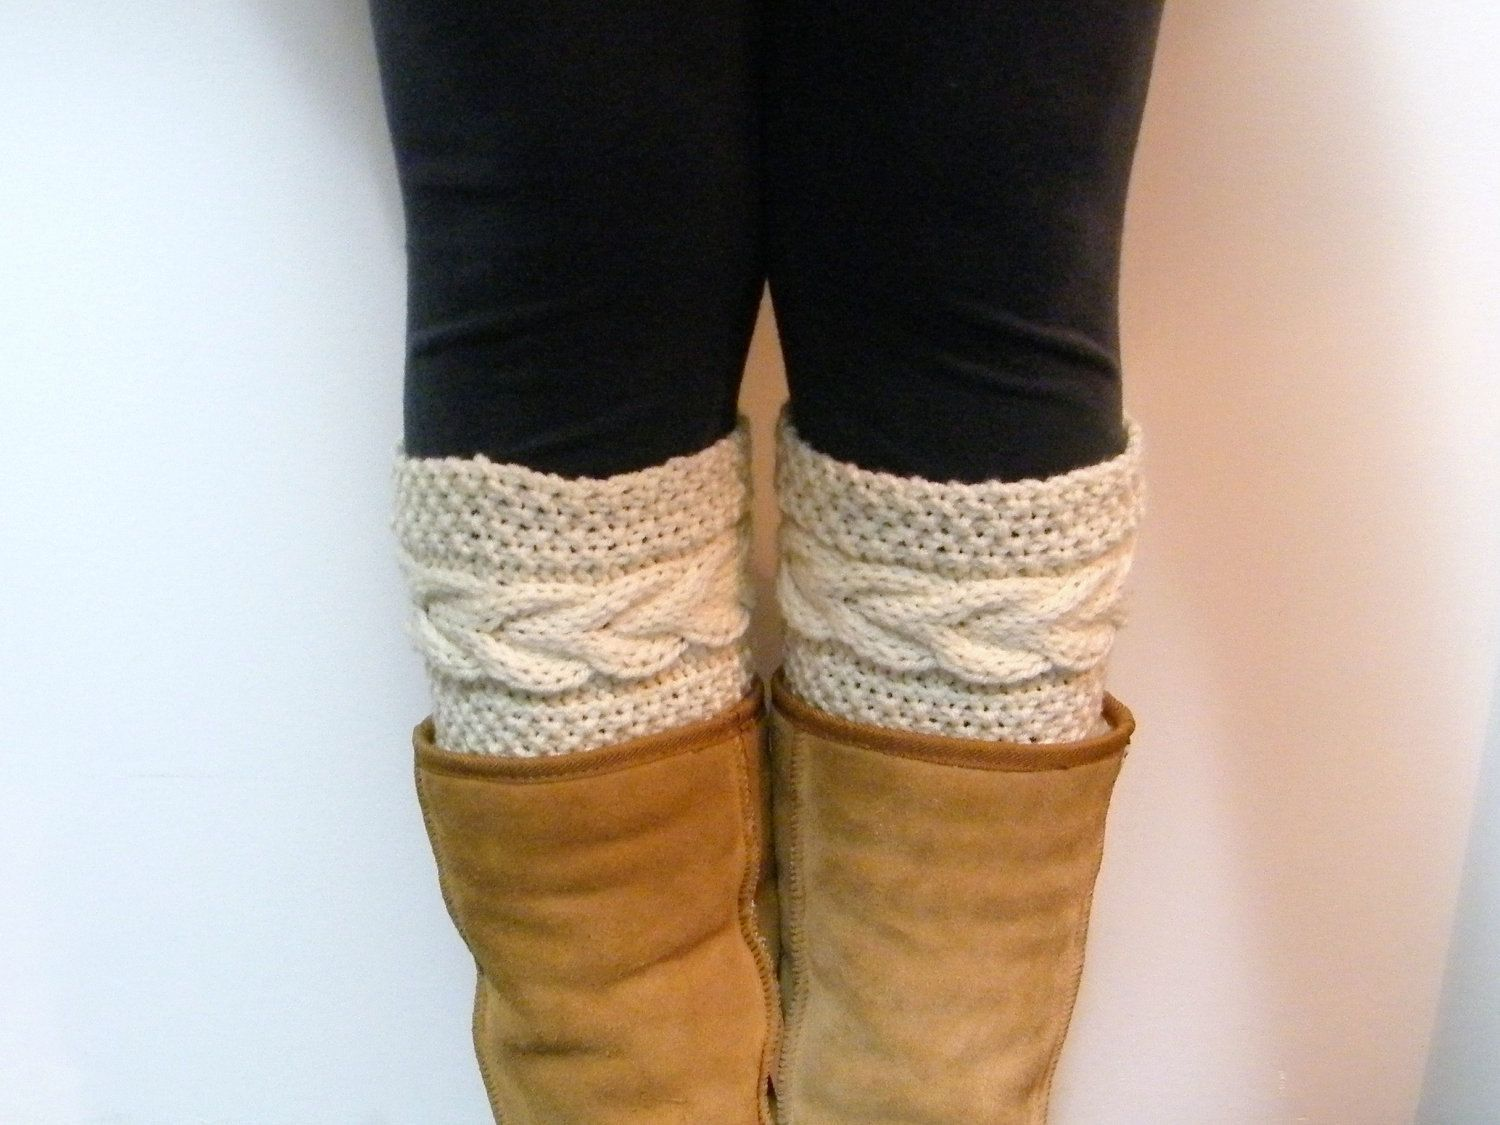 Grace cable boot cuffs knitting pattern image boof cuffs grace cable boot cuffs knitting pattern image bankloansurffo Images